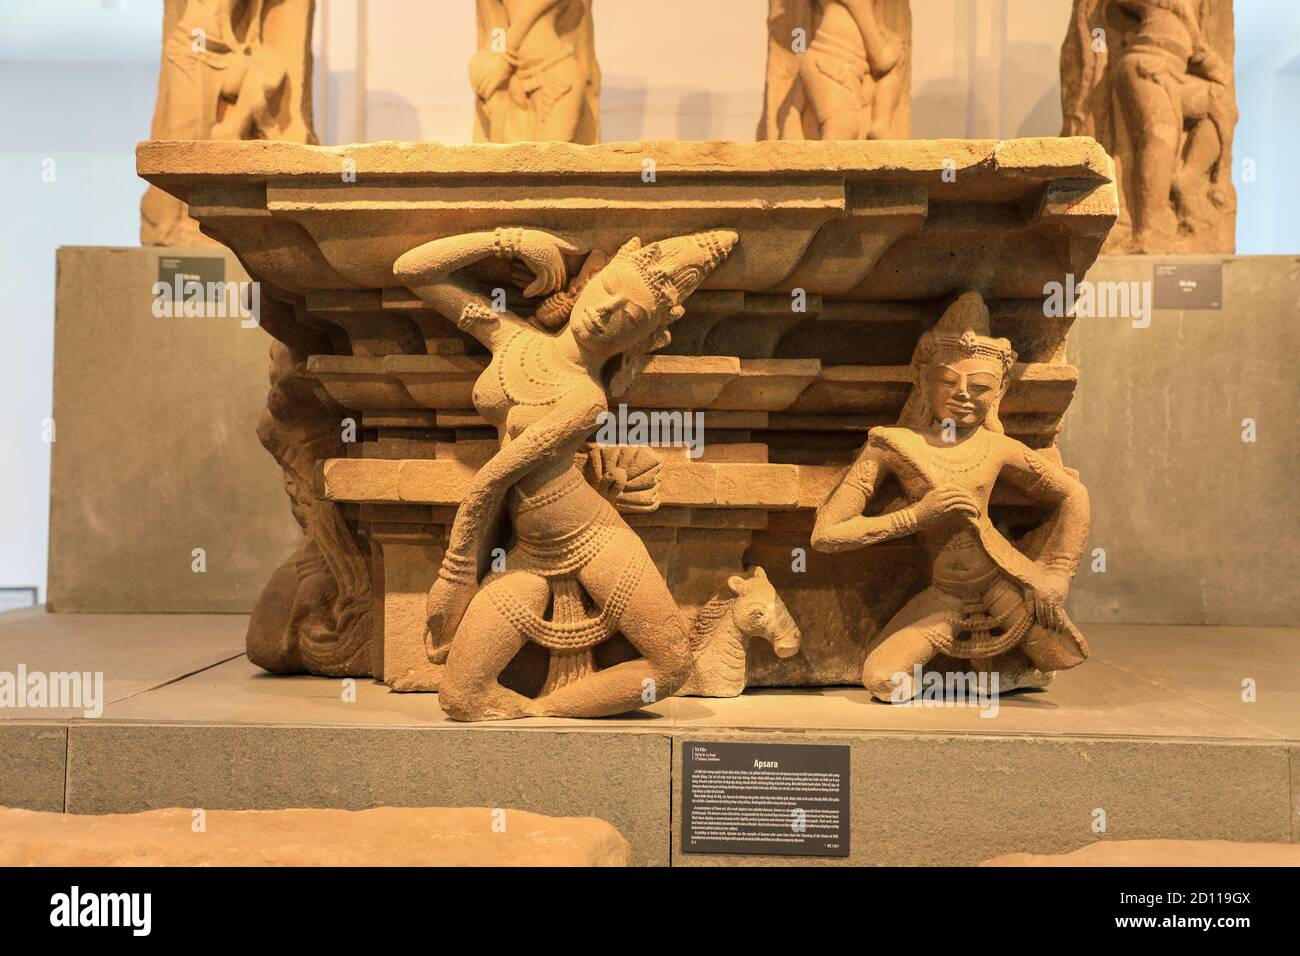 the-asparas-or-dancers-pedestal-from-tra-kieu-at-the-museum-of-cham-sculpture-danang-vietnam-asia-2D119GX.jpg